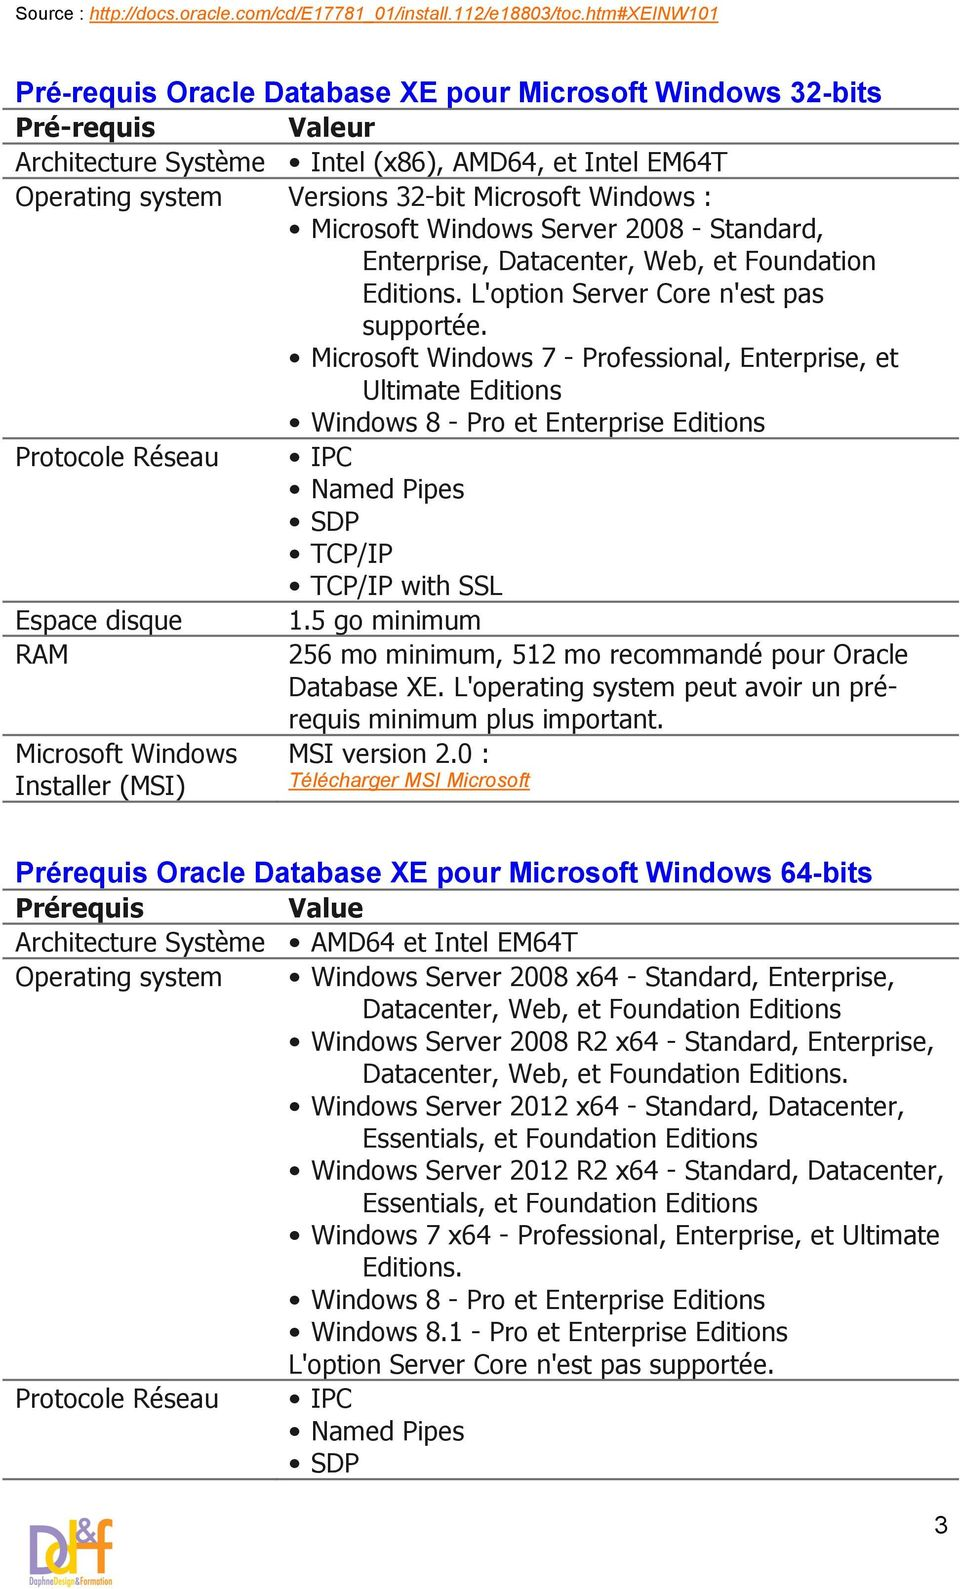 Microsoft Windows 7 - Professional, Enterprise, et Ultimate Editions Windows 8 - Pro et Enterprise Editions Protocole Réseau IPC Named Pipes SDP TCP/IP TCP/IP with SSL Espace disque 1.